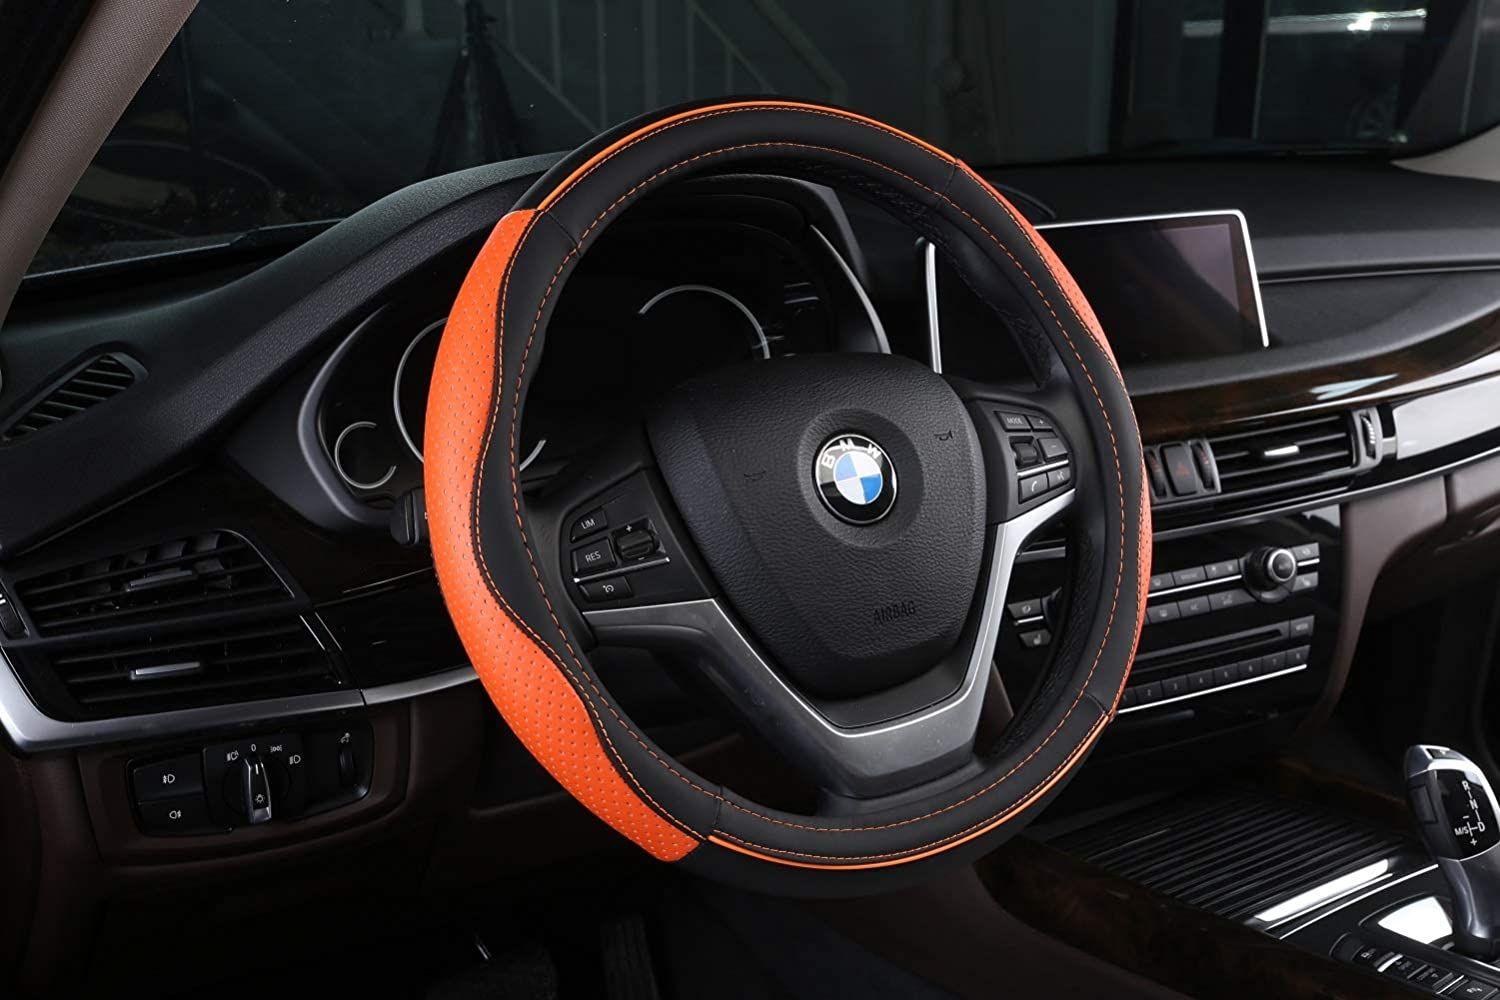 ZJWZ Steering Wheel Cover Leather, Leather Car Steering Wheel Cover, Four Seasons Universal, Sporty Curve, Durable, Thick, Non-Slip, Suitable for 38 cm / 15 ...